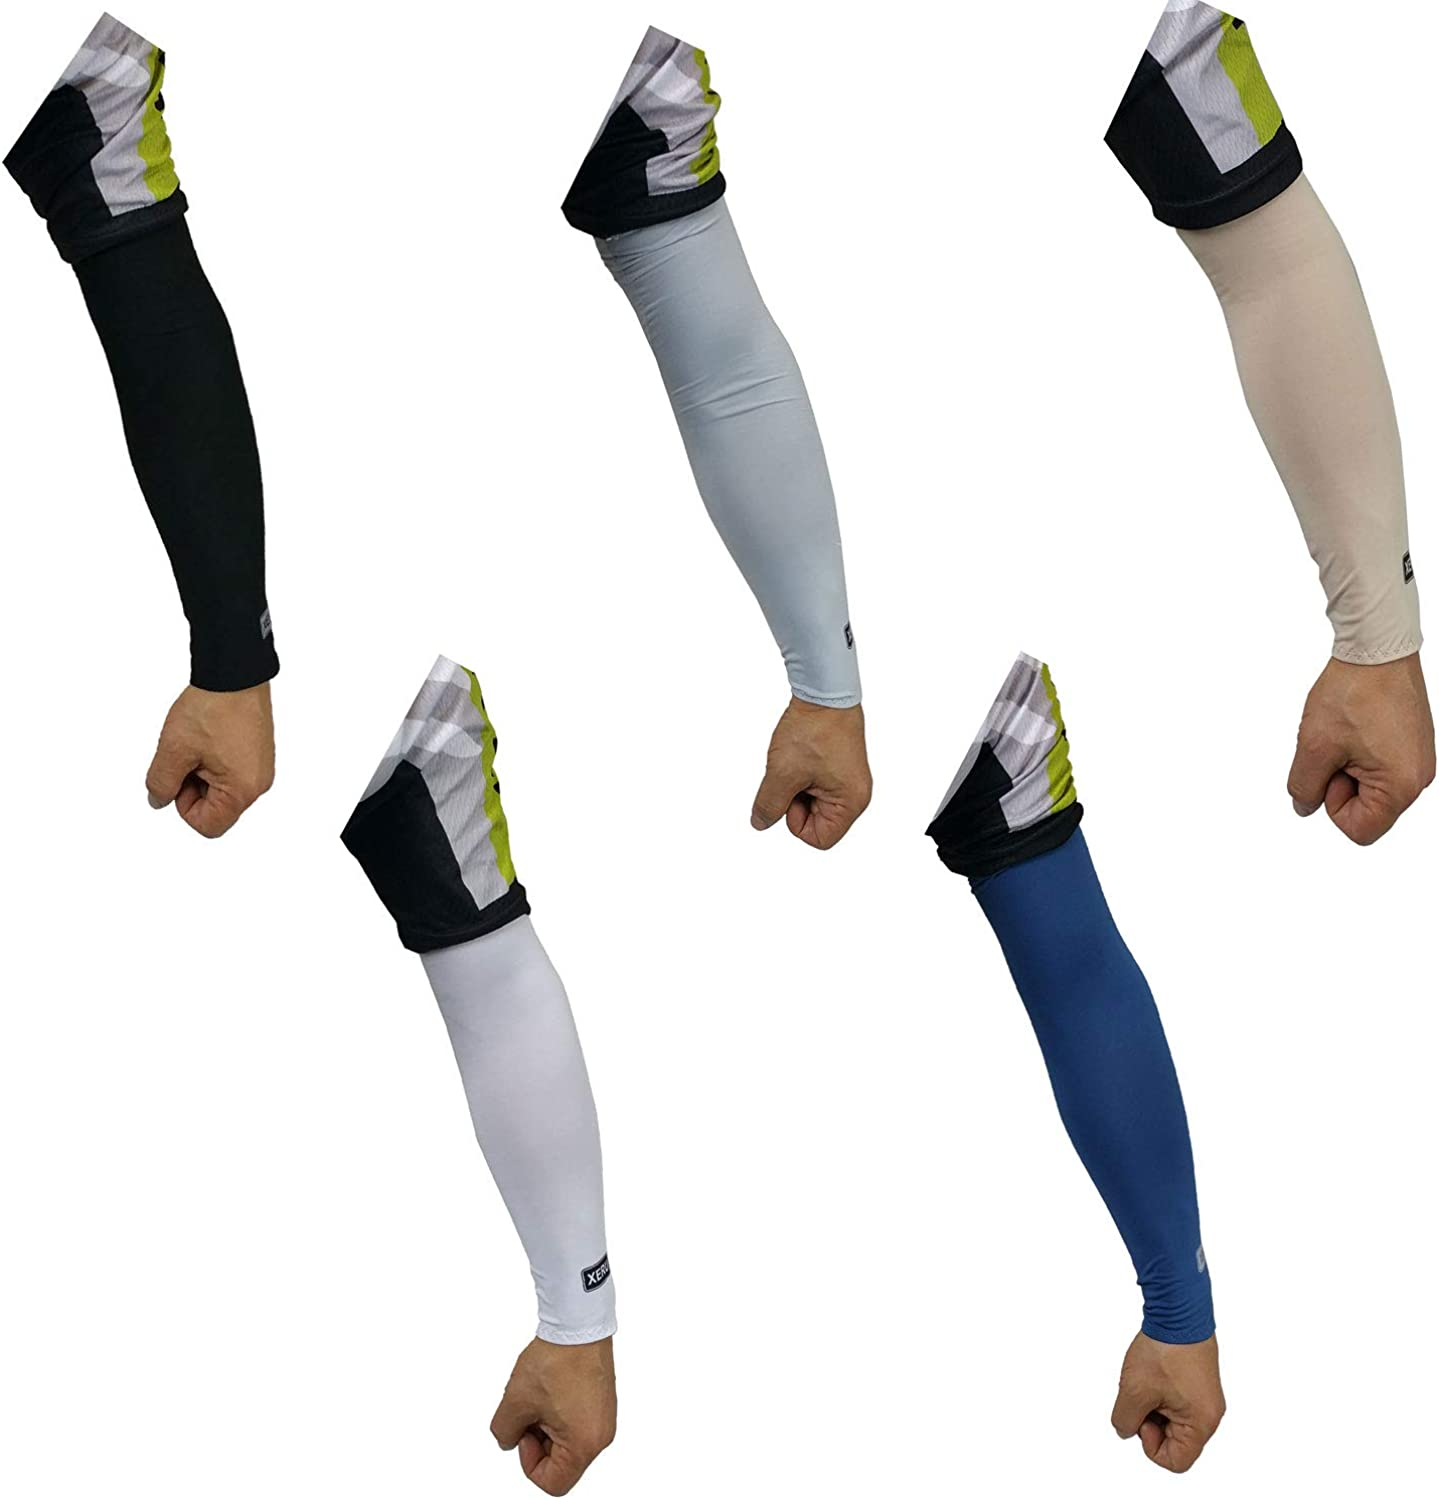 Xeru 5 pairs Cooling Arm Sleeves Cover UV Sun Protection Outdoor Sports Unisex Men Women